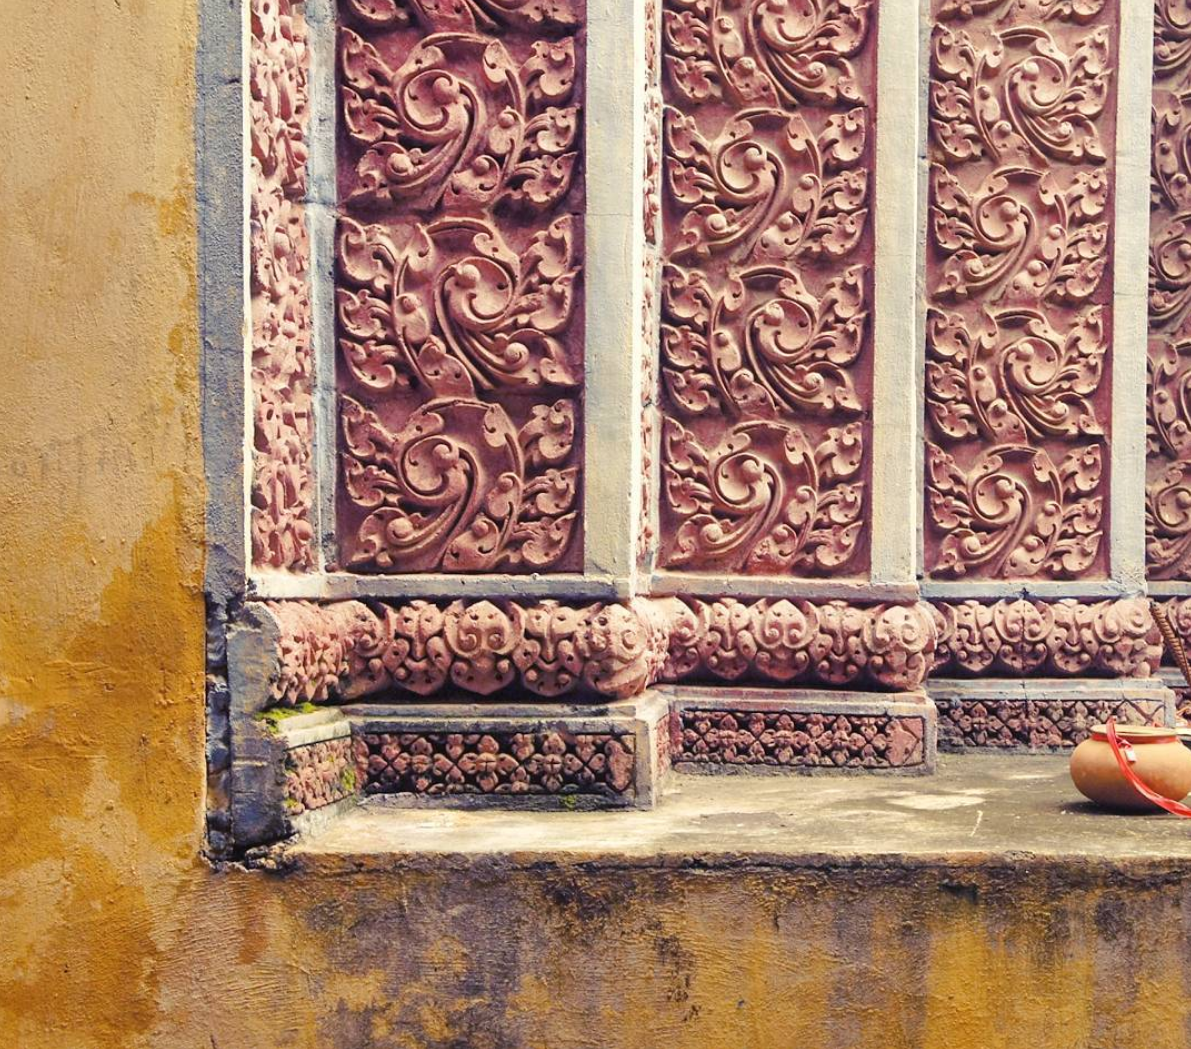 Wall of the crematorium in the grounds of the Chak Angkre Krom pagoda